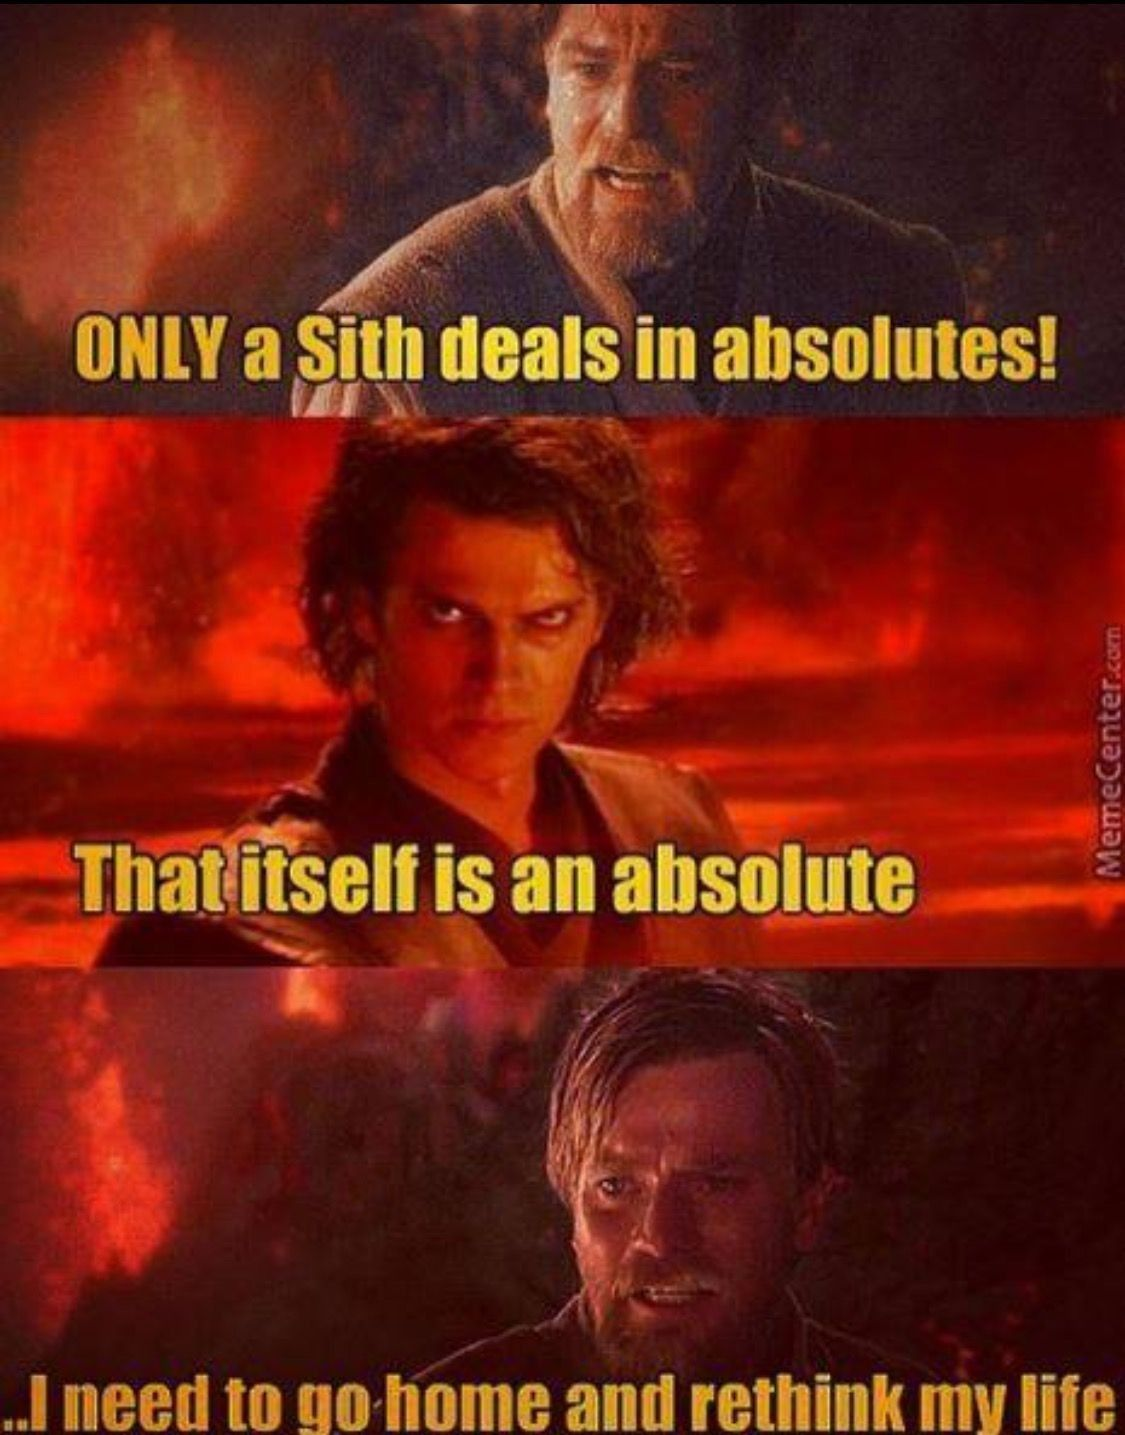 Only a sith deals in absolutes | Star wars humor, Star wars jokes ...